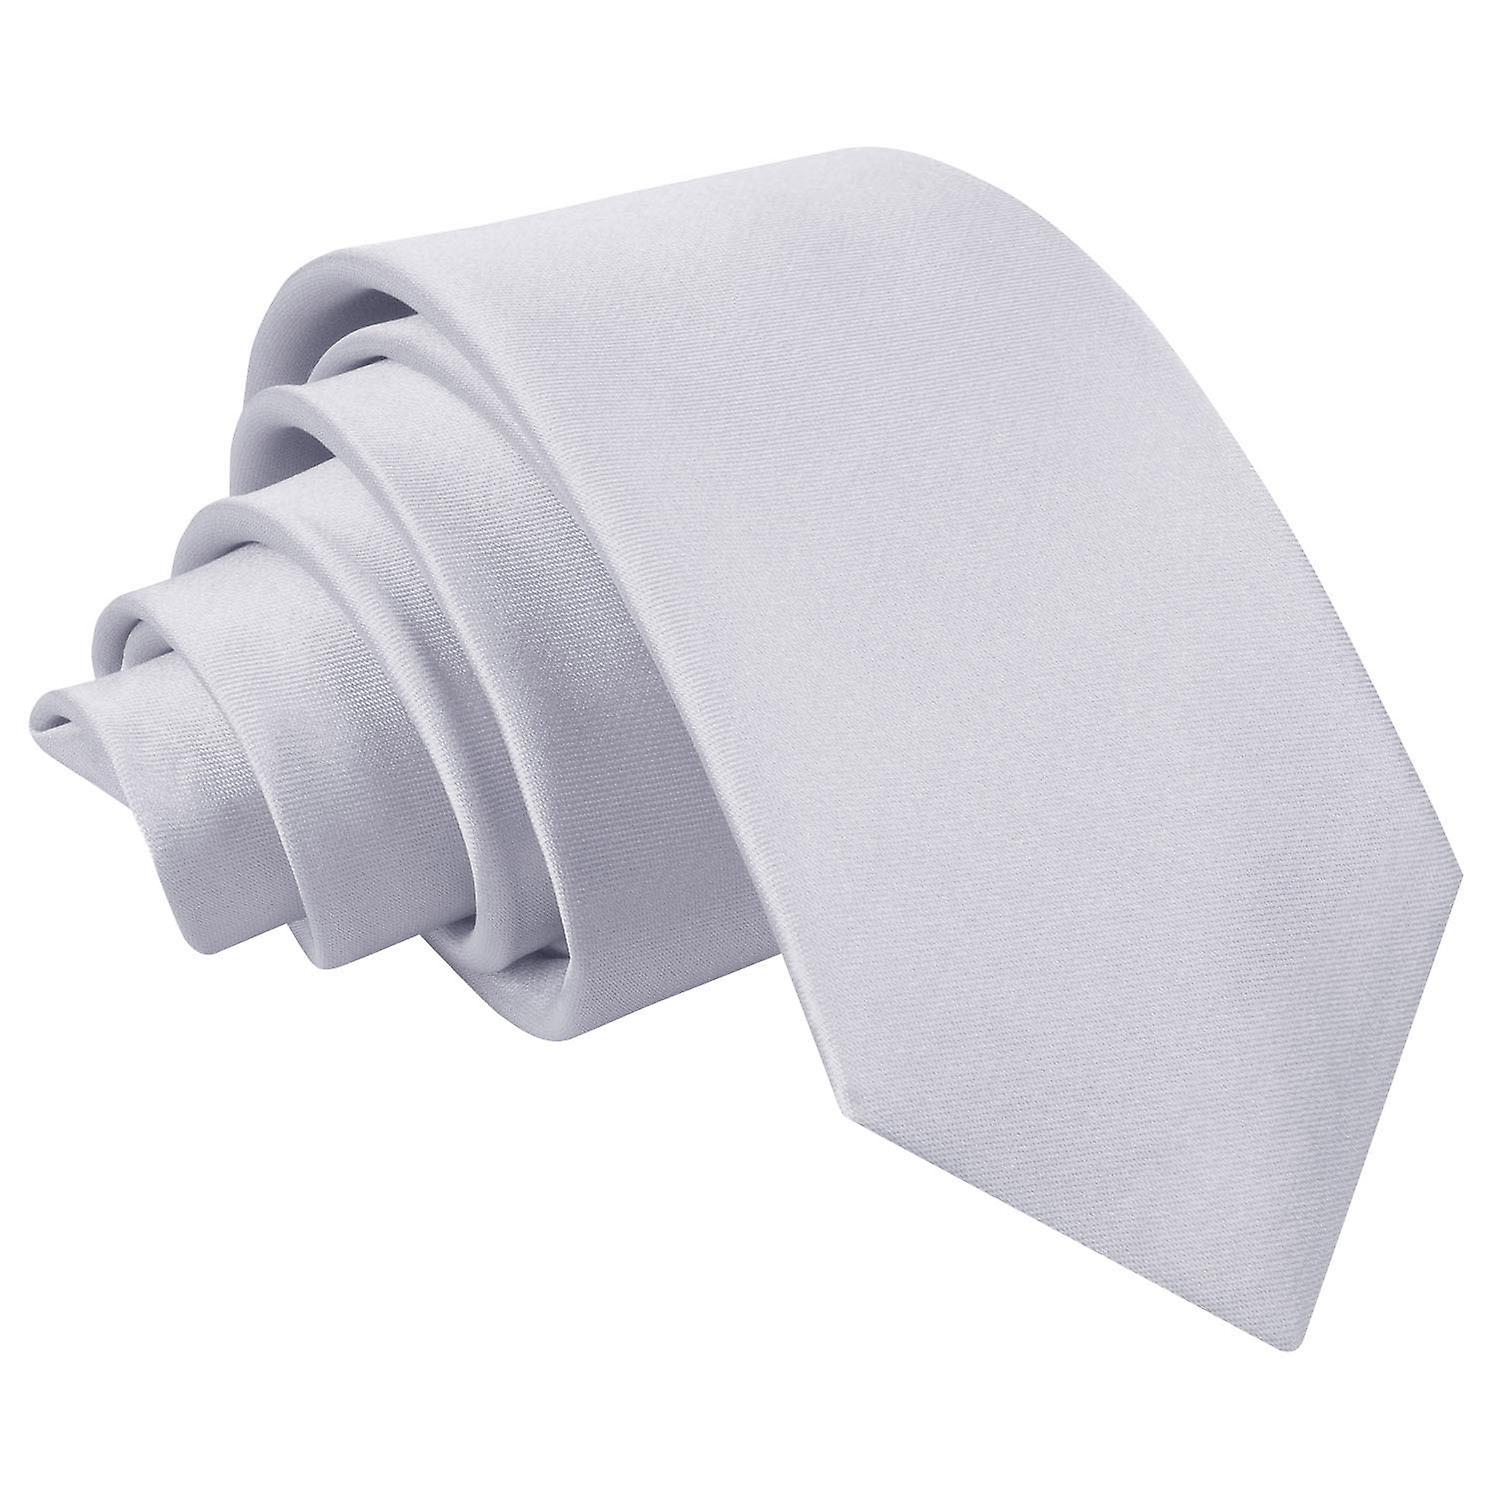 Boy's Plain Silver Satin Tie  (8+ years)